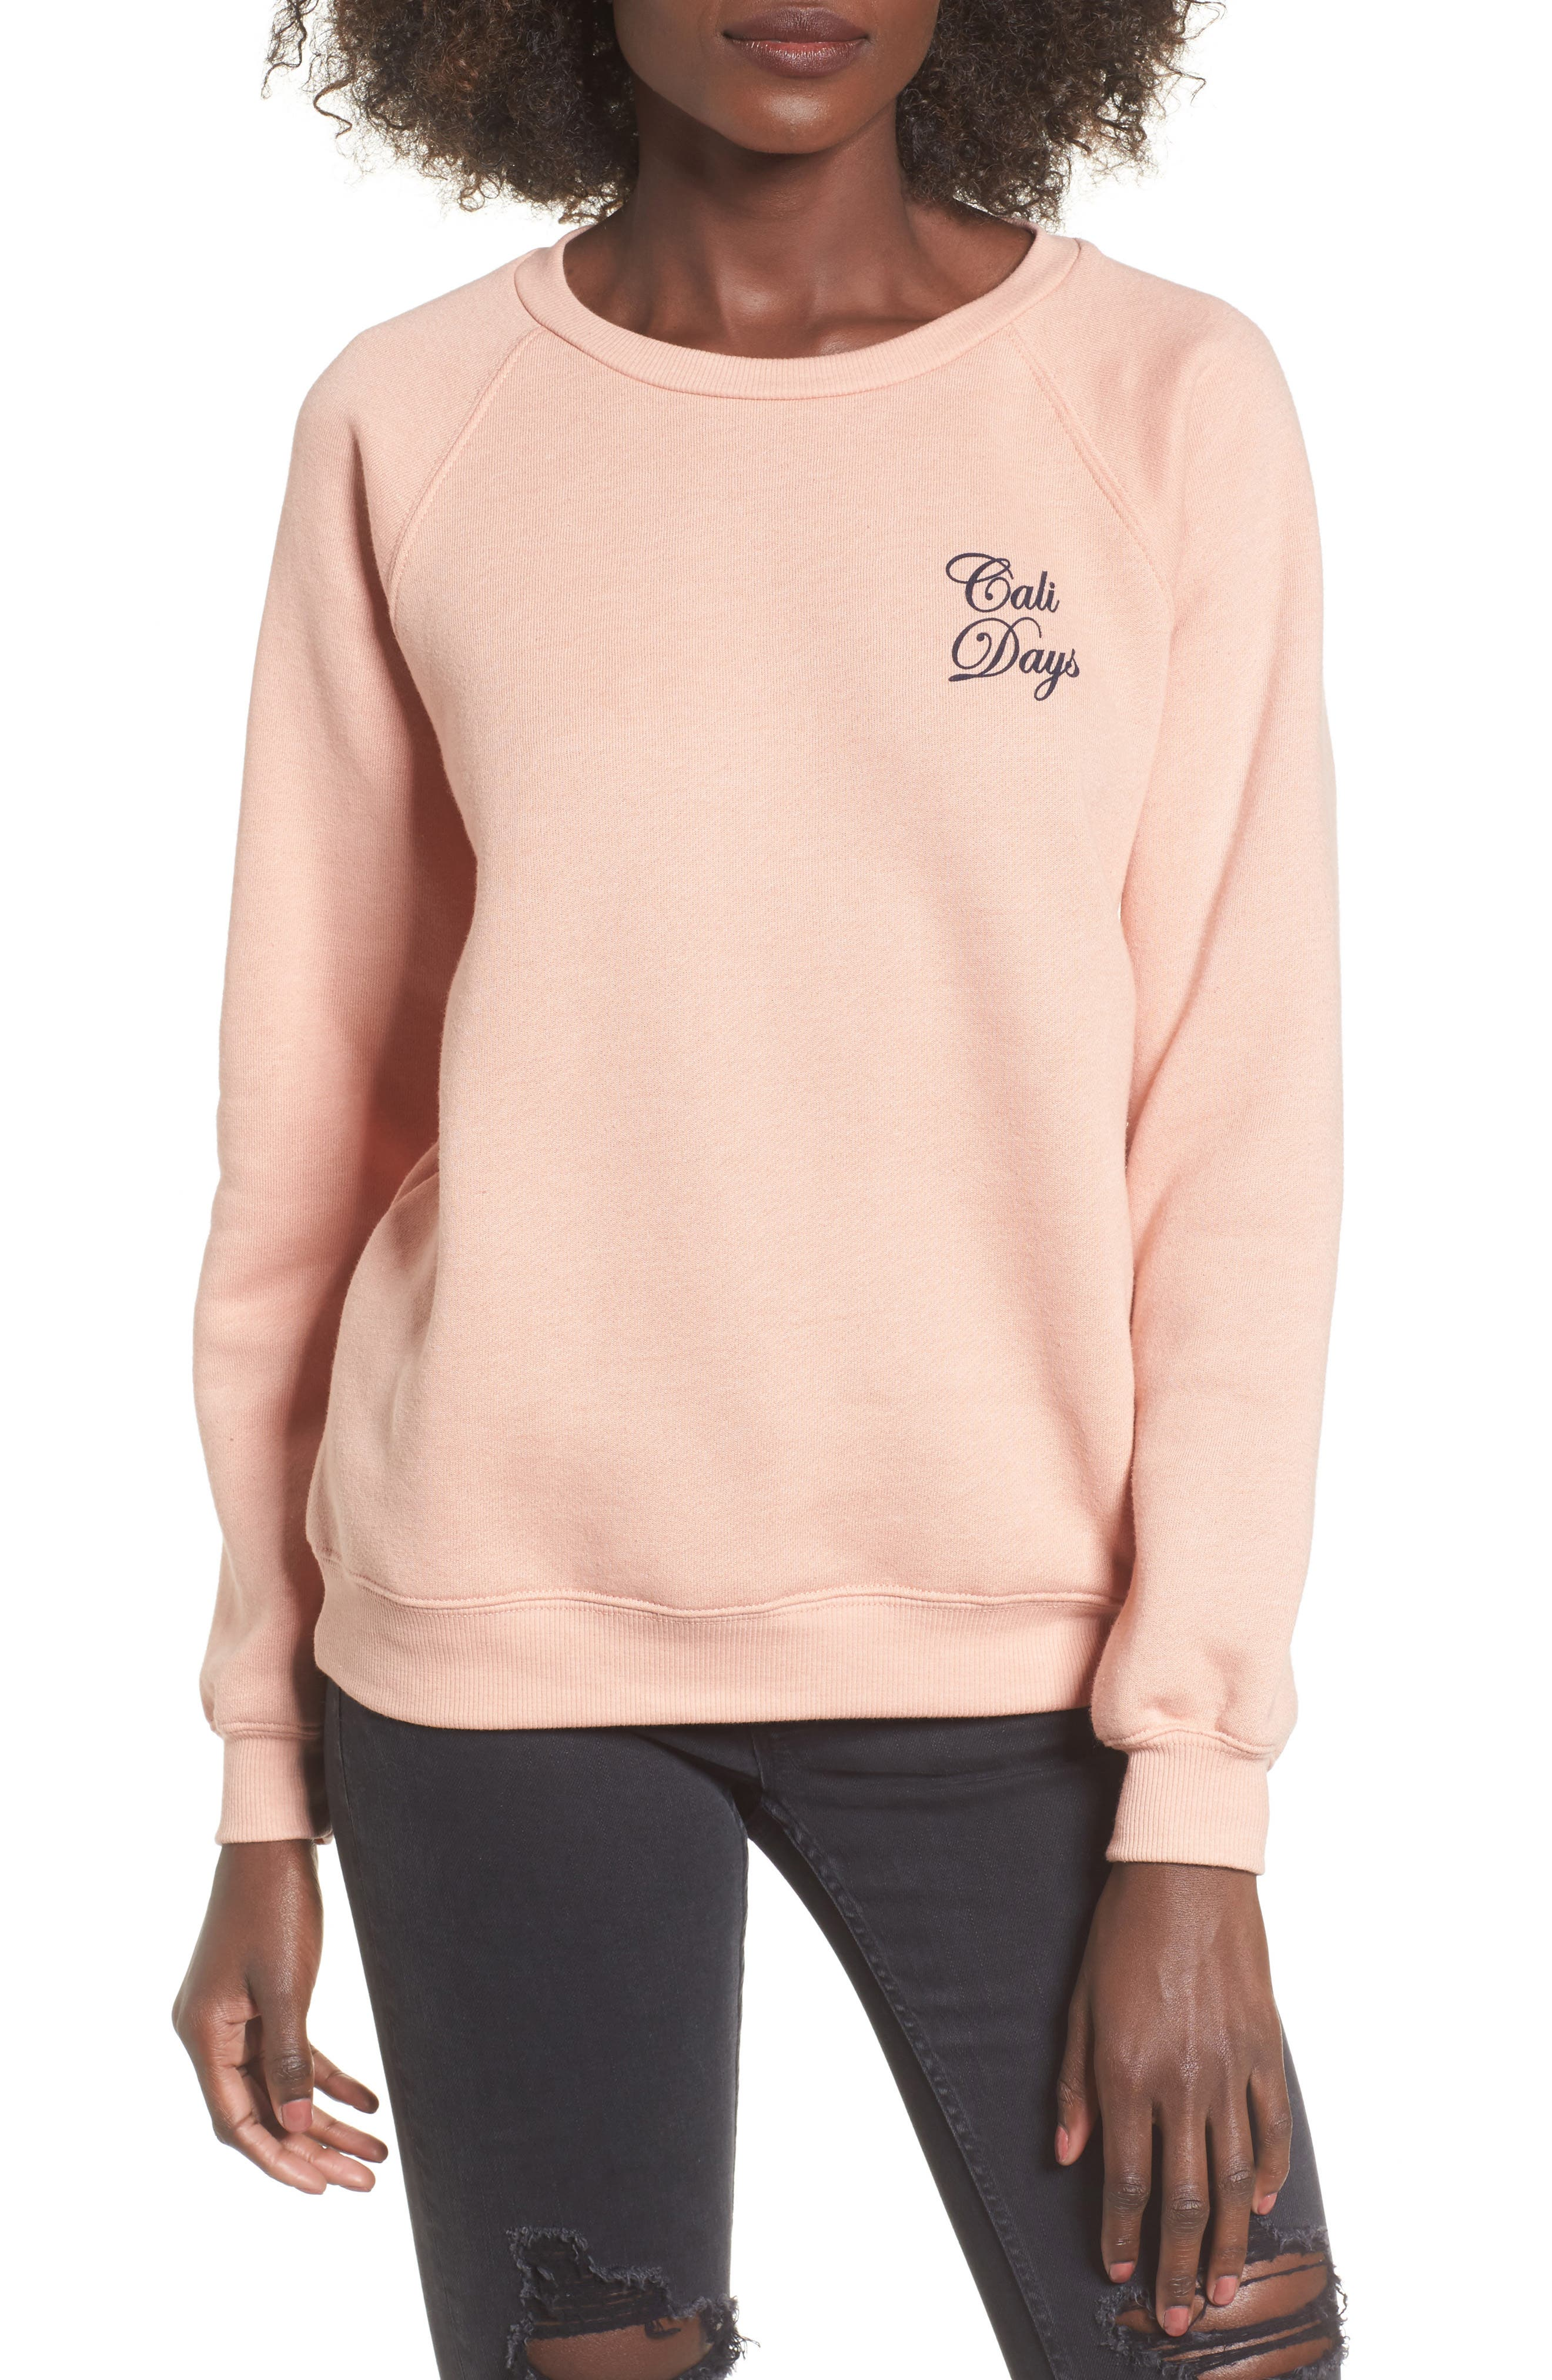 Cali Days Sweatshirt,                             Main thumbnail 1, color,                             Pearl Pink